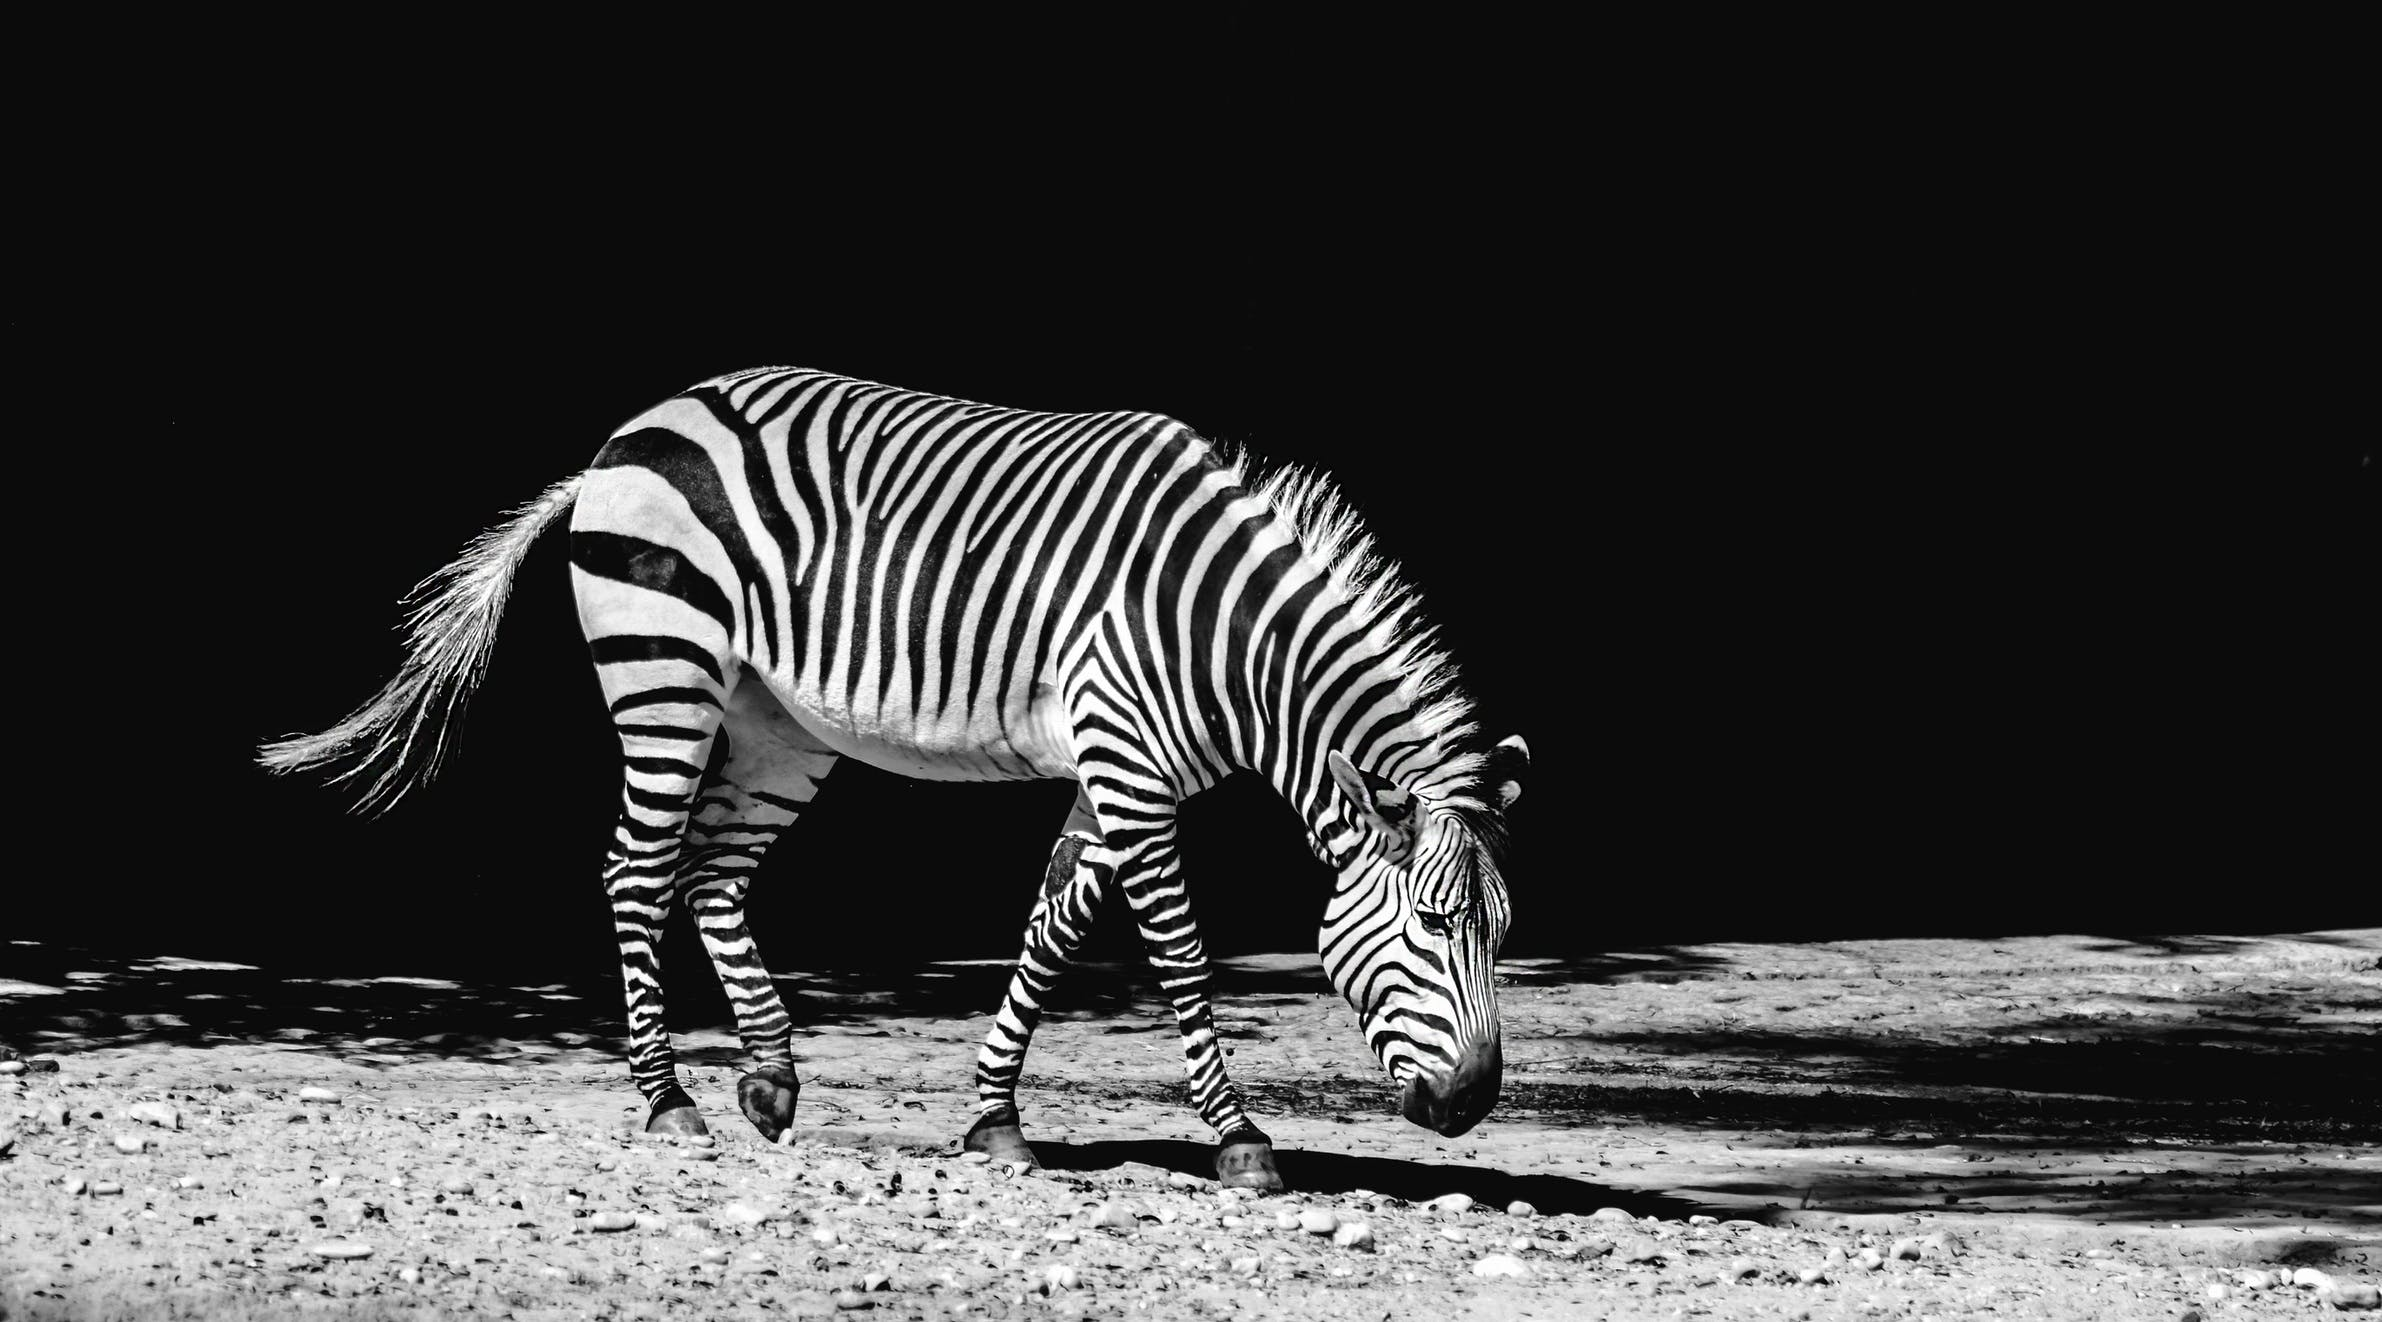 Free stock photo of black-and-white, walking, zebra crossing, pattern